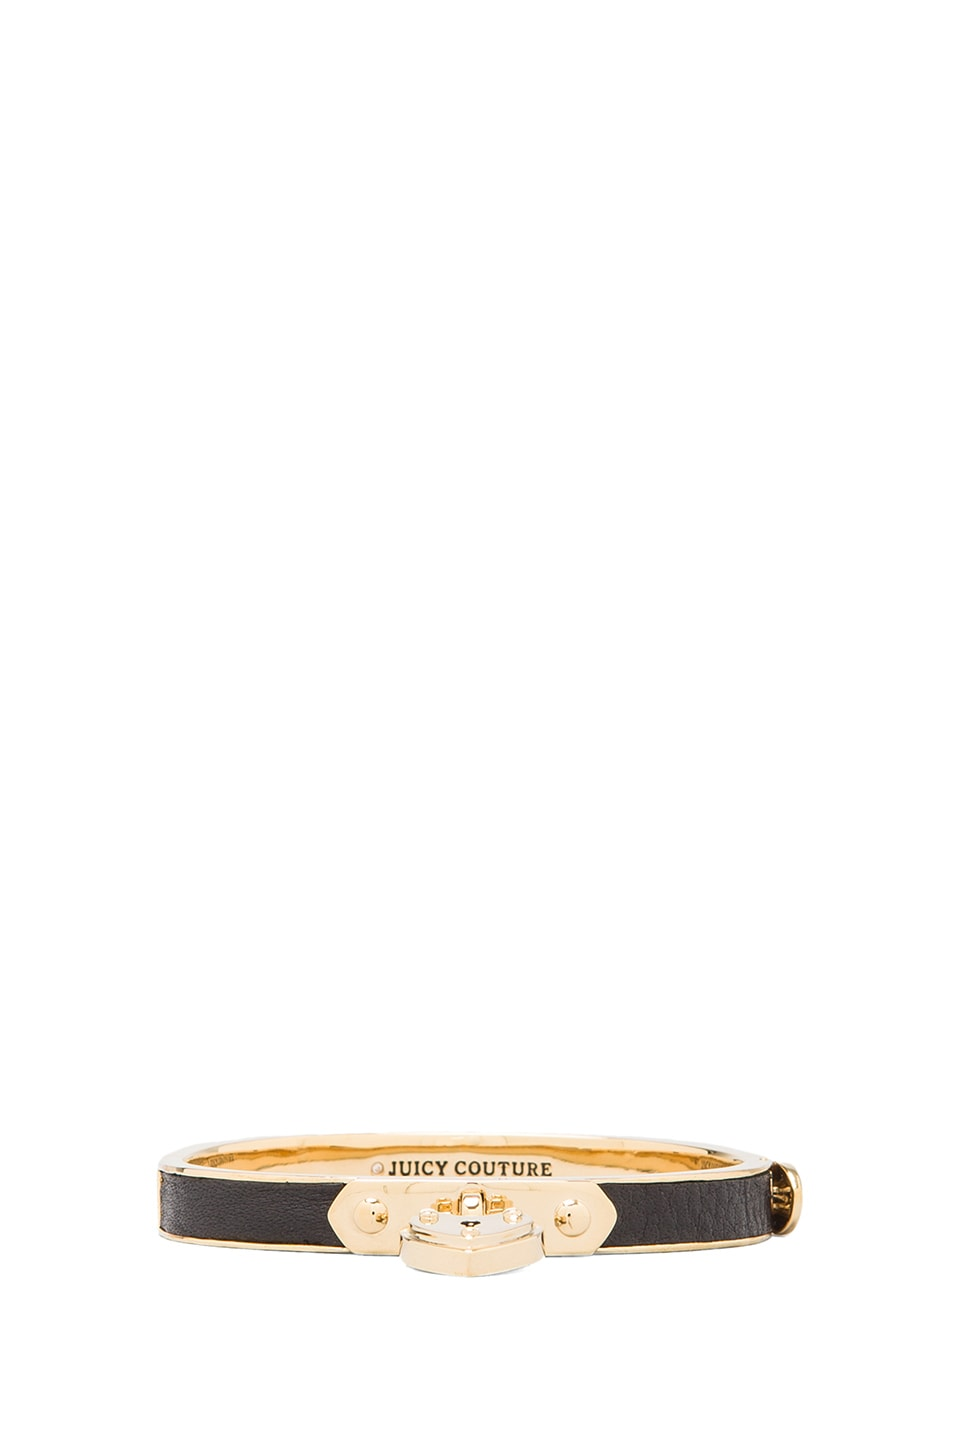 Juicy Couture Skinny Padlock Leather Bracelet in Black